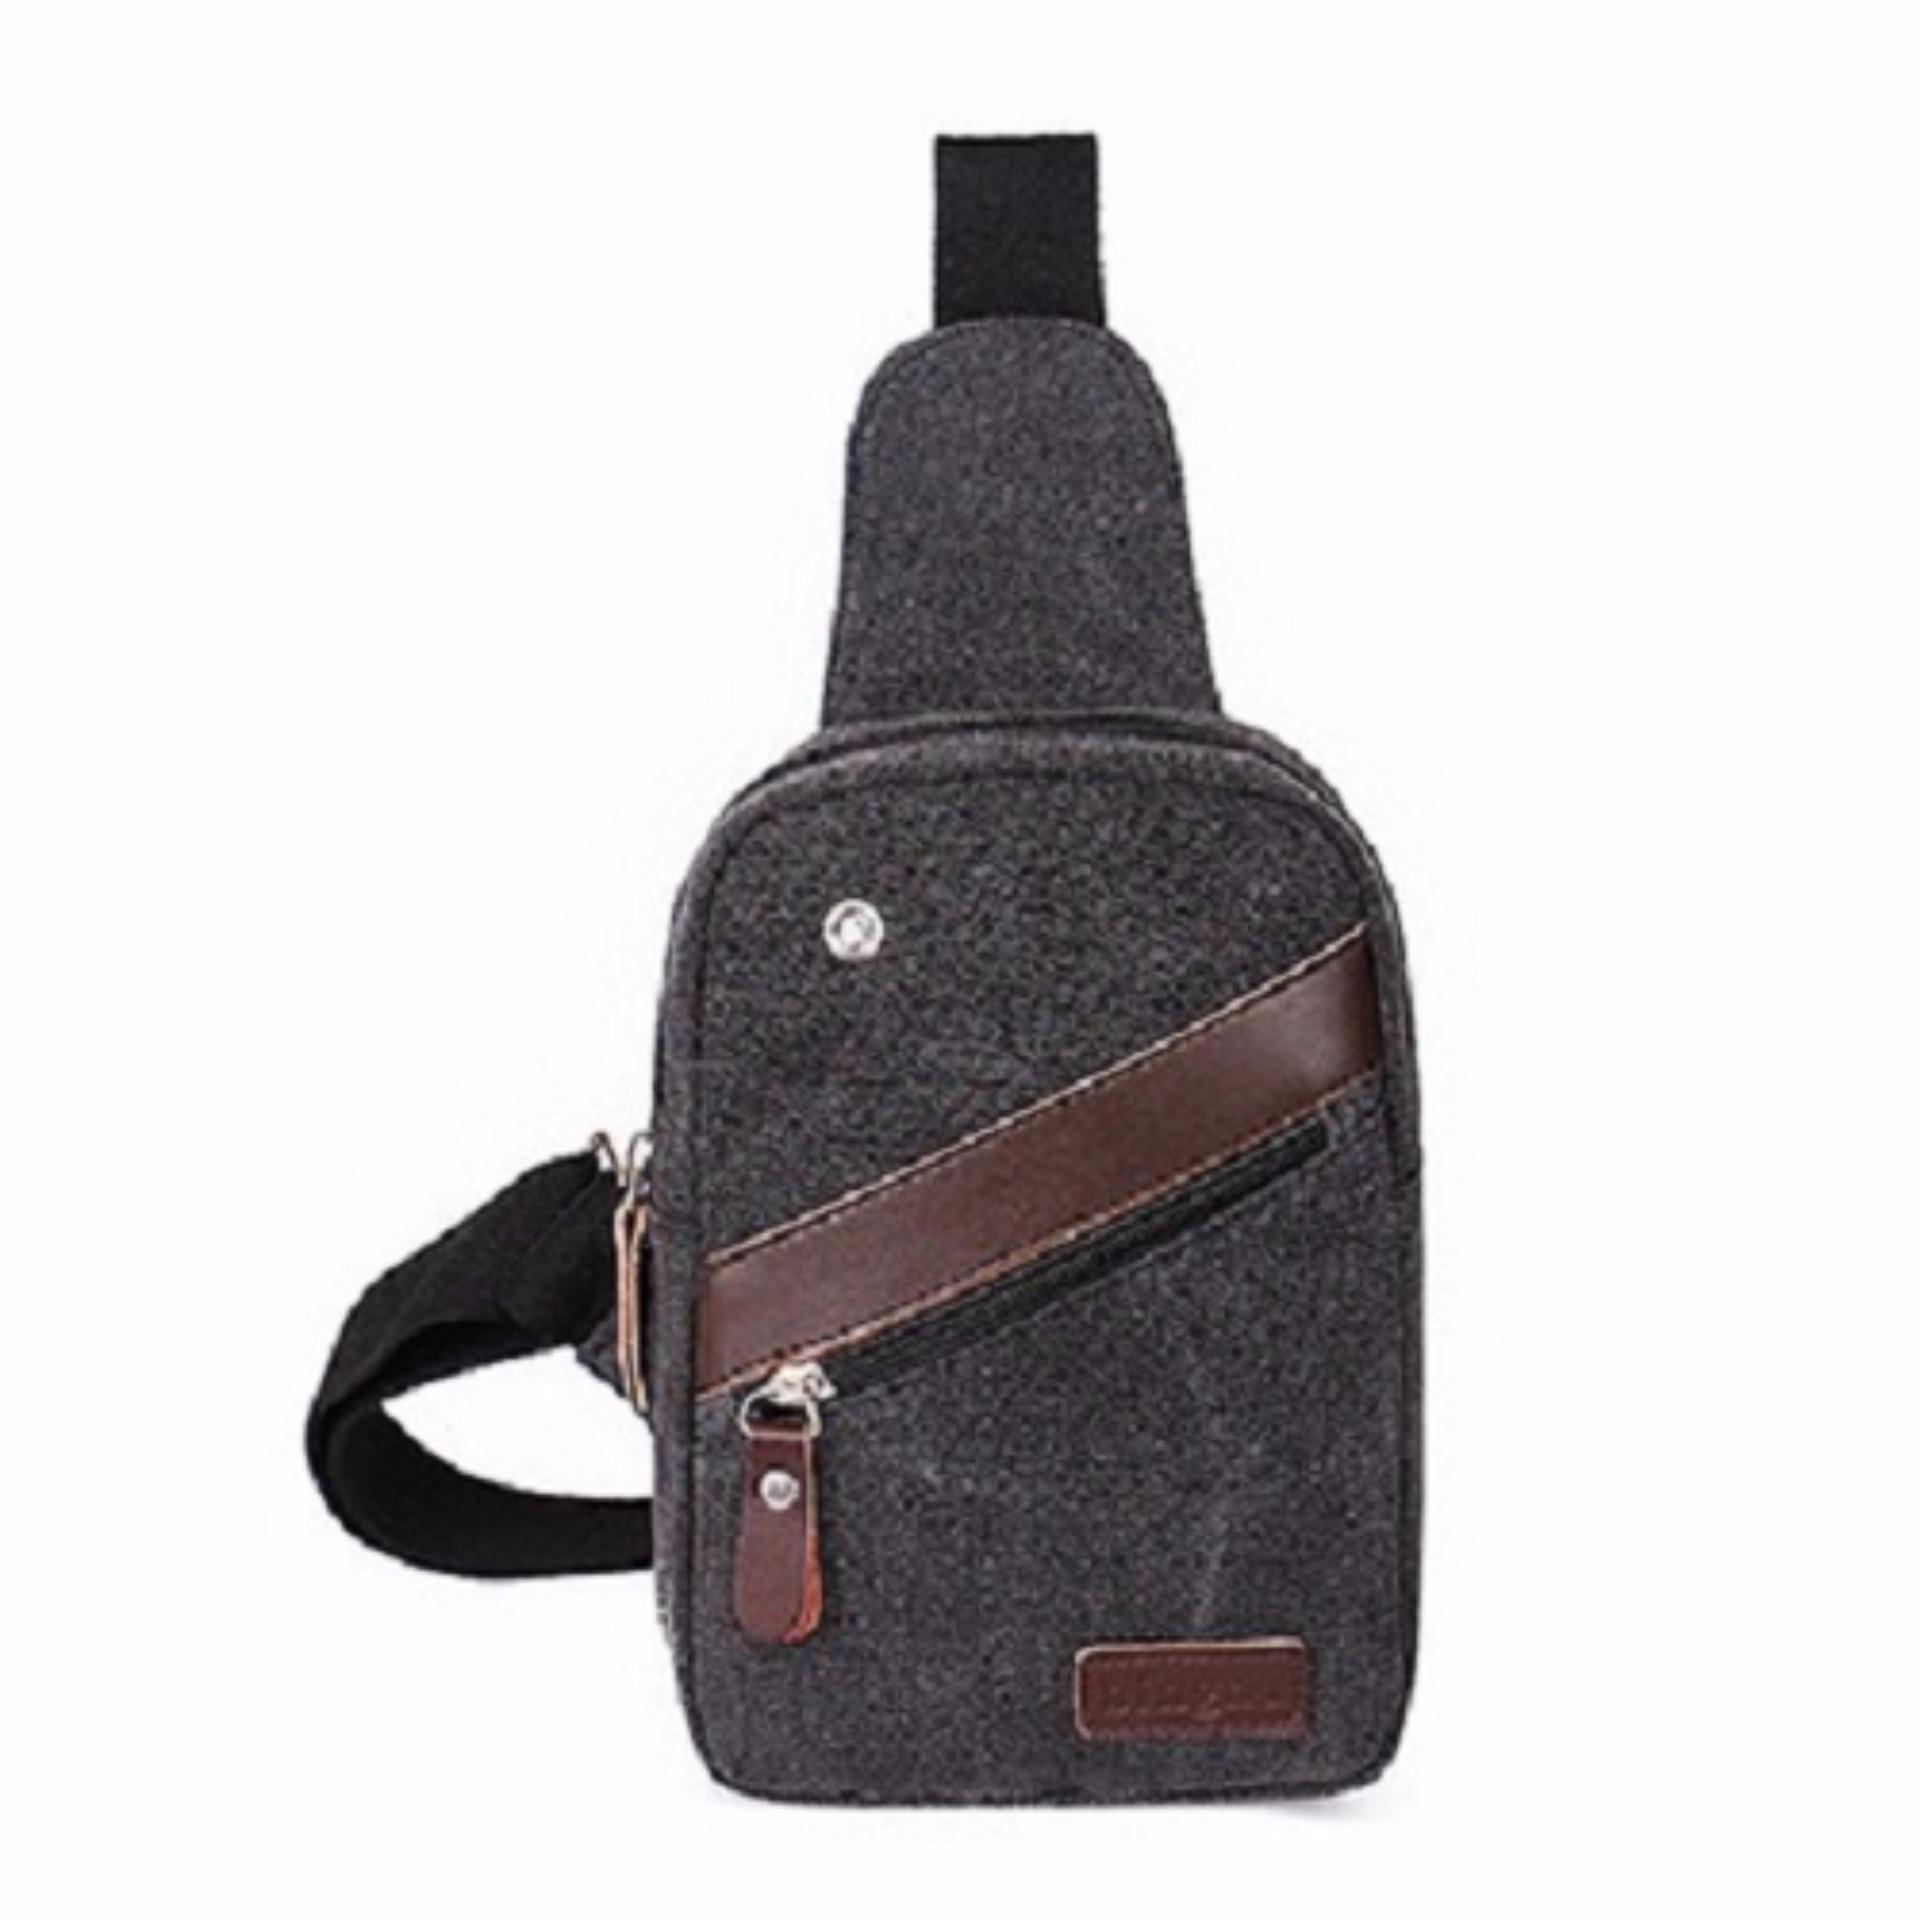 Jual Generic Tas Selempang Messenger Canvas Import Mini Sling Bag Untuk Tablet Android Ipad Mini Sb Bhx Online